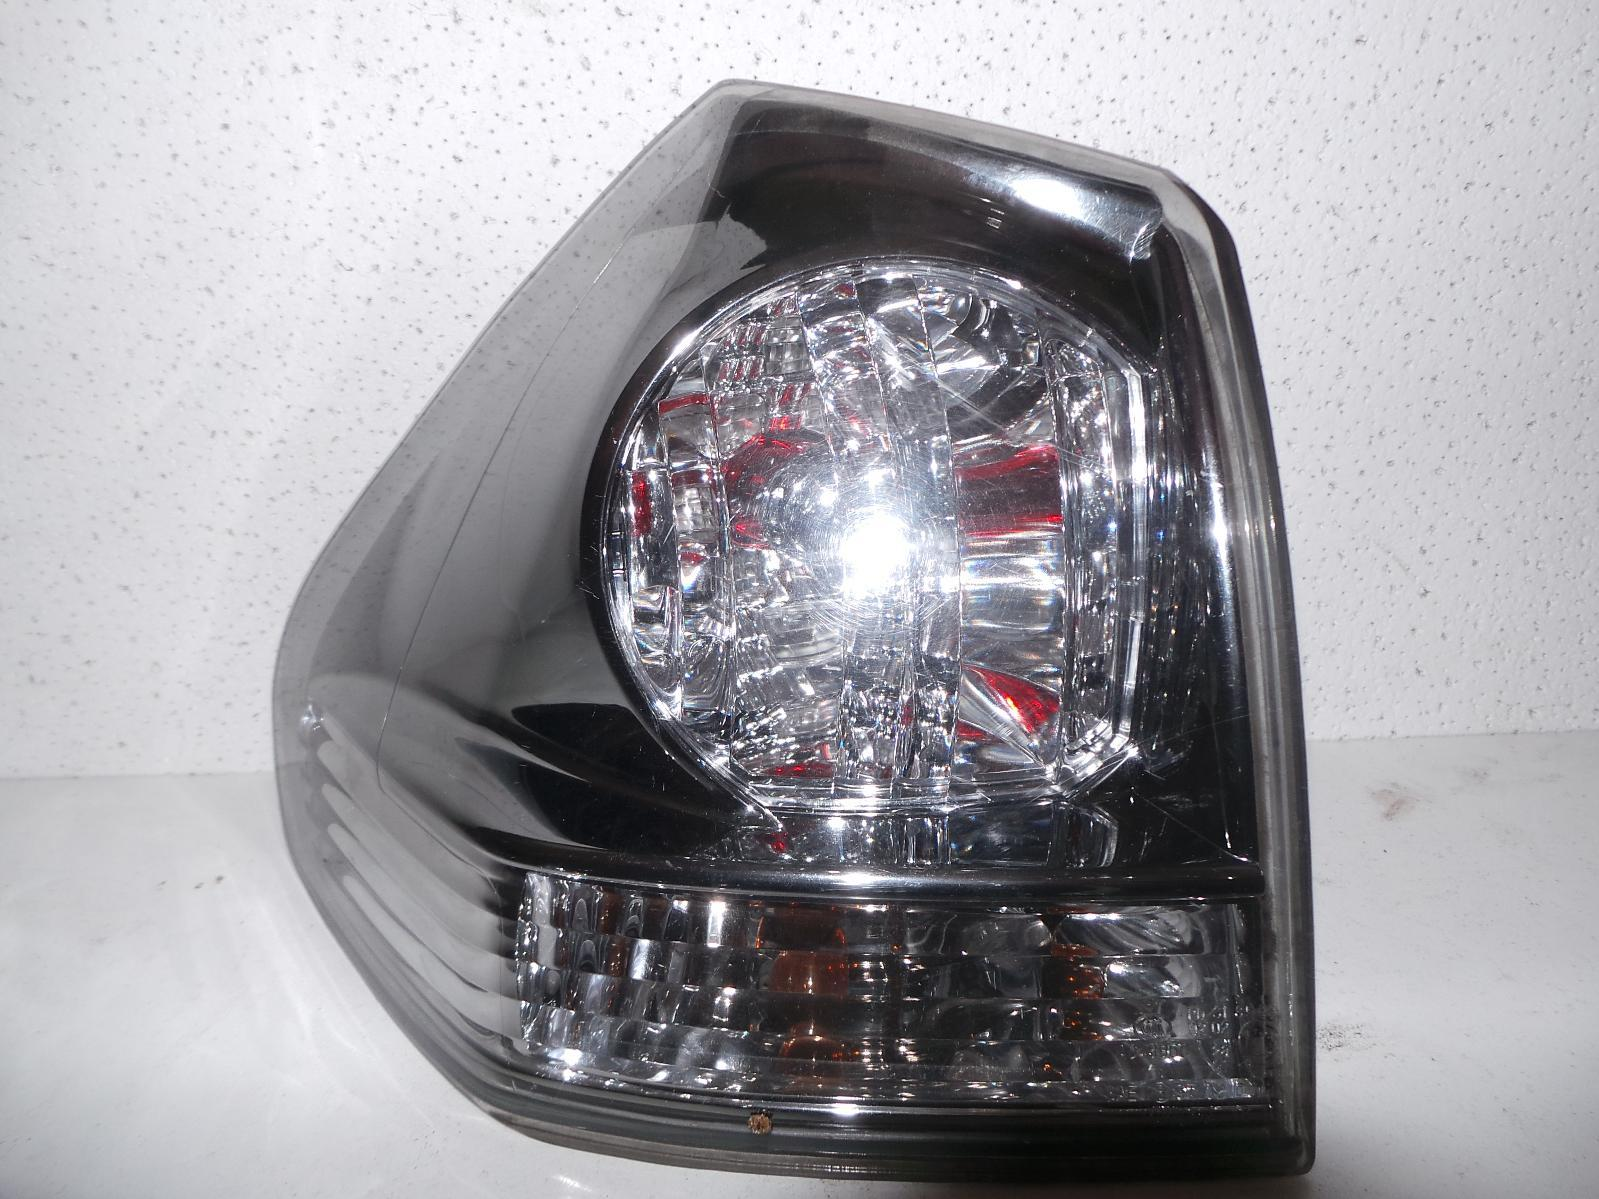 LEXUS RX330, Left Taillight, IN BODY, 04/03-12/05